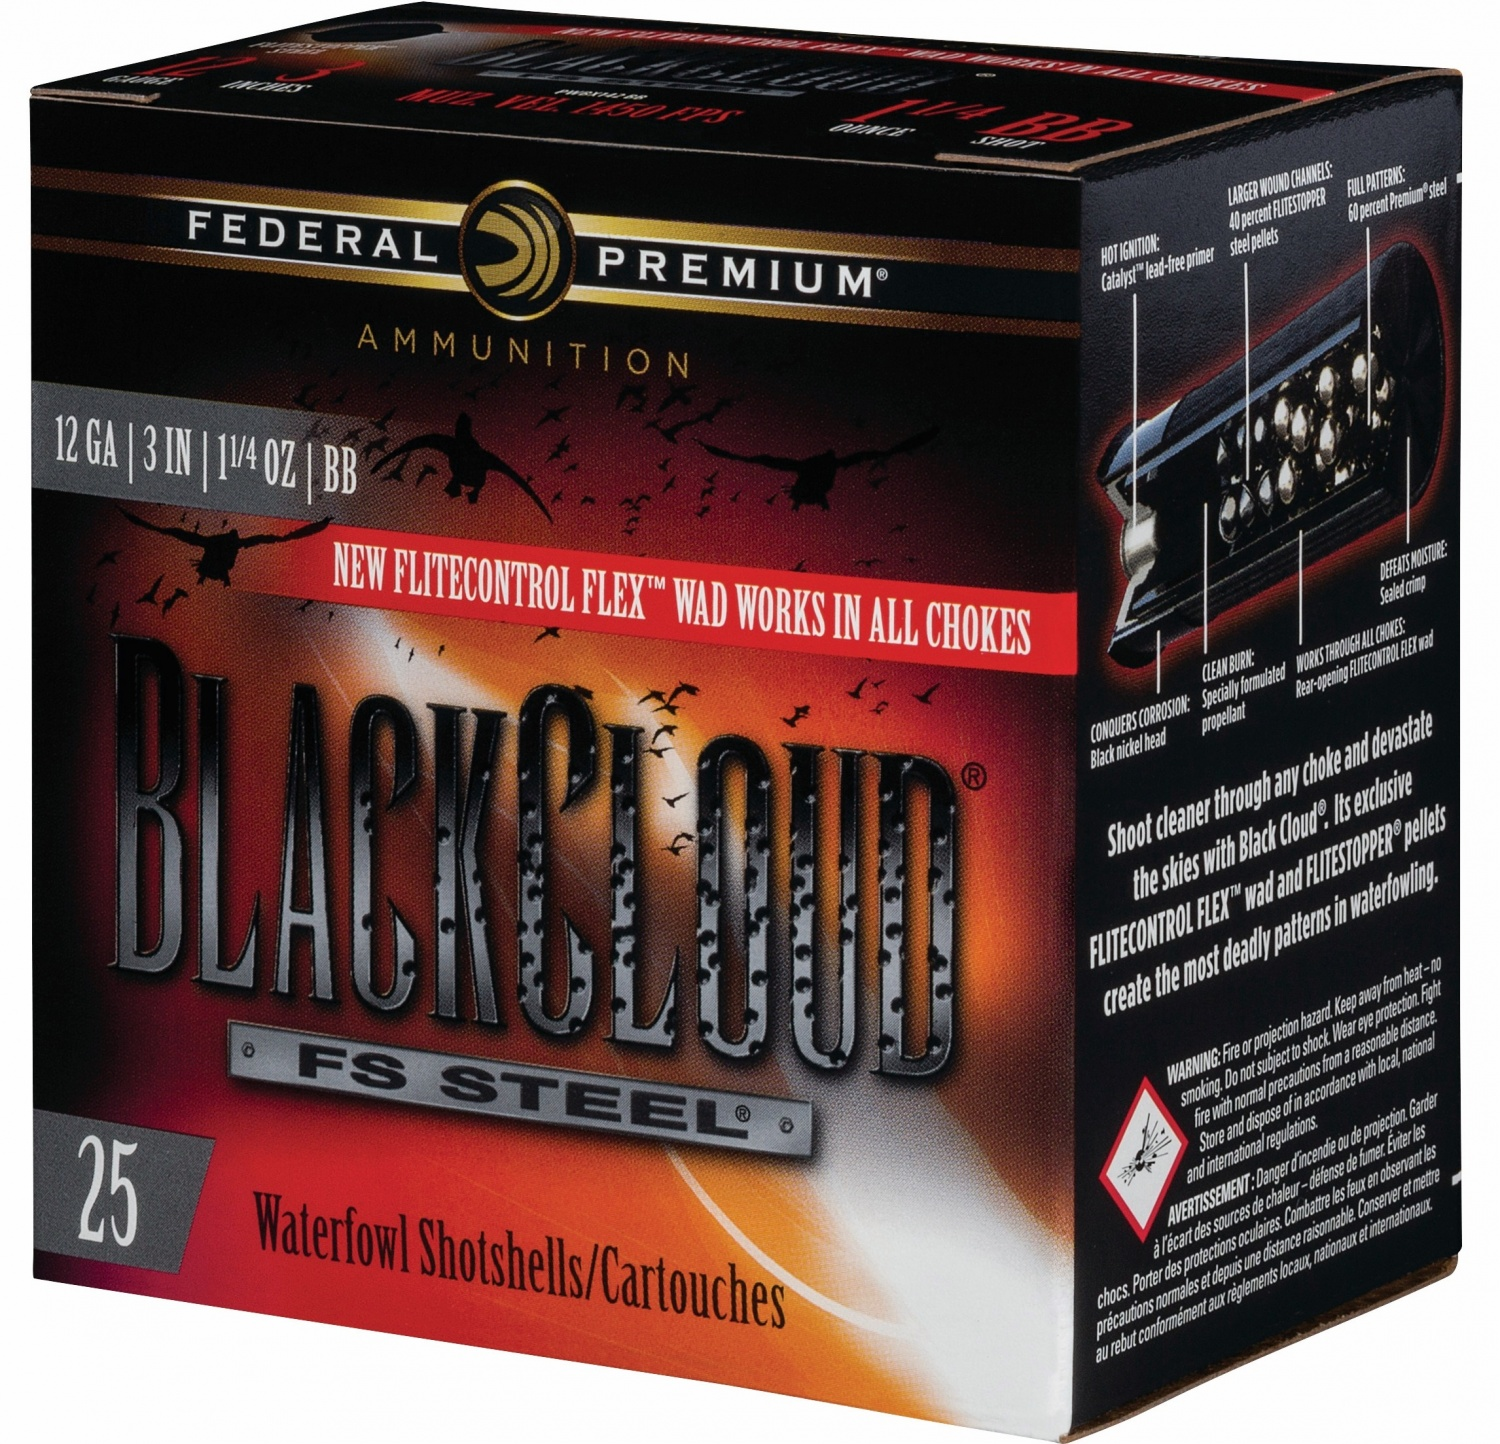 Blackcloud FS Steel